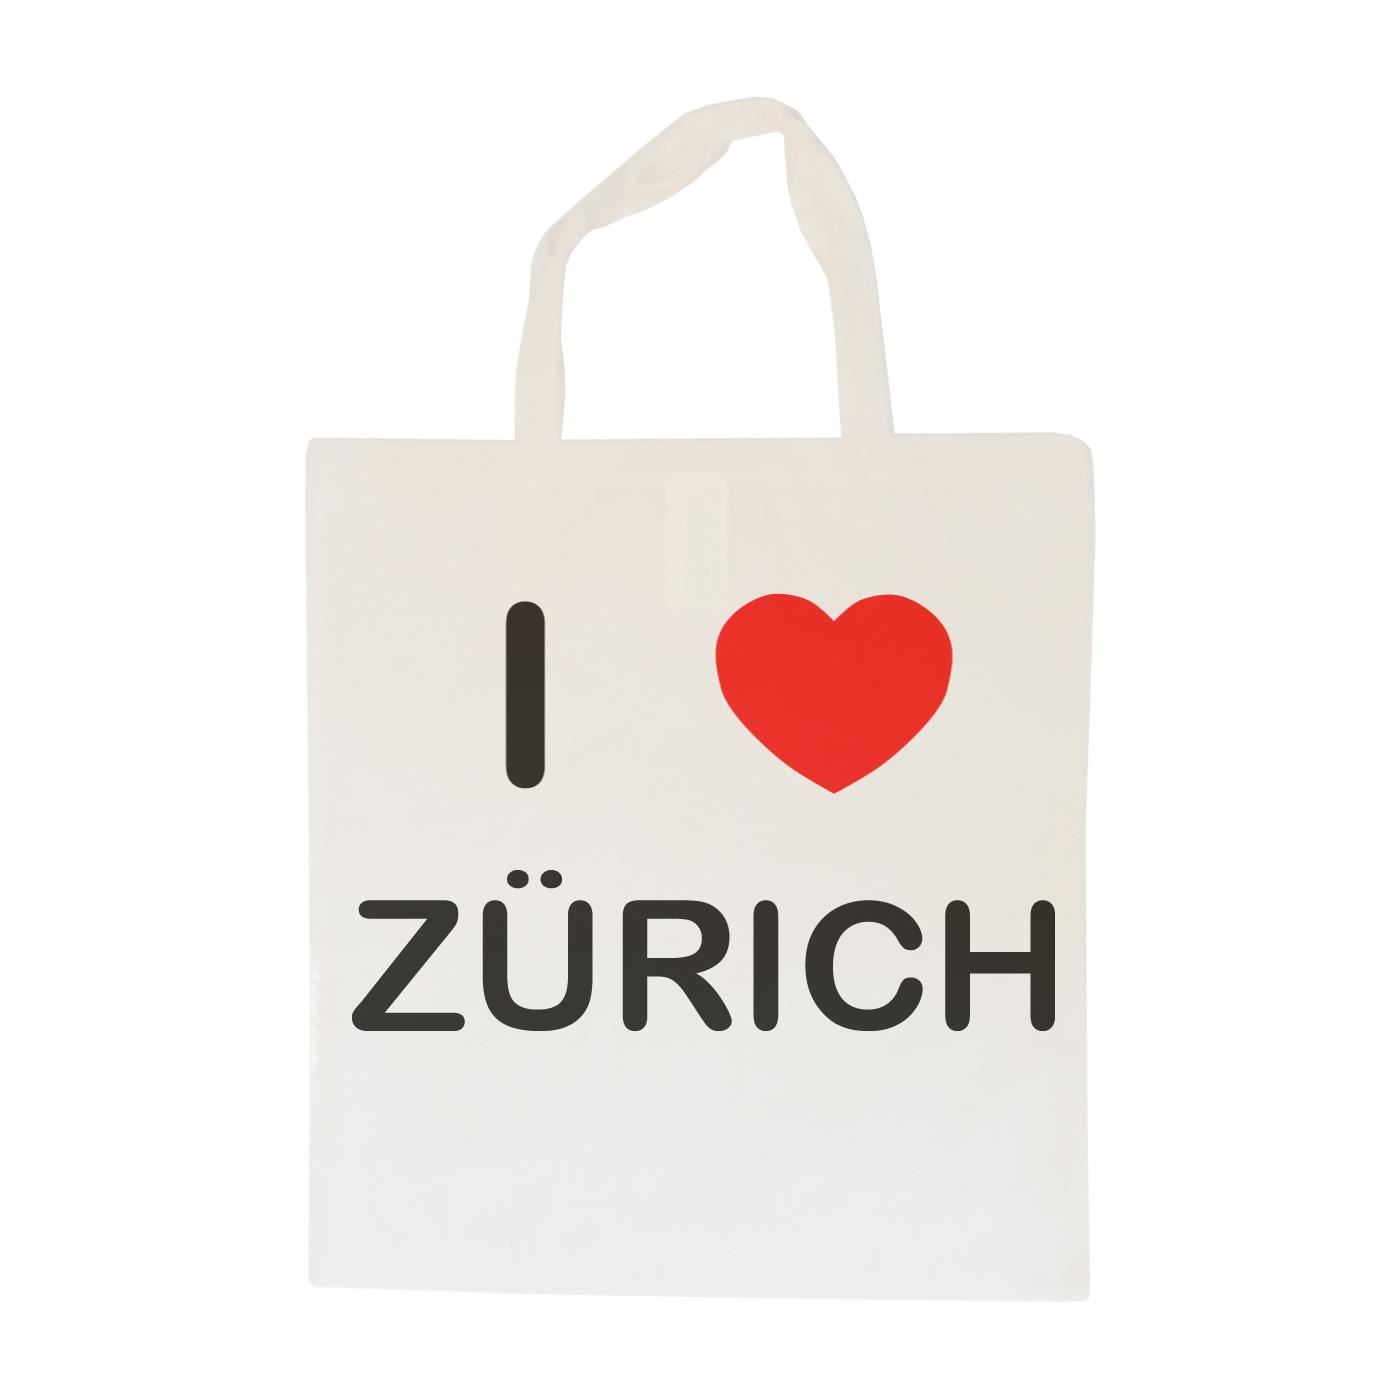 I Love Zurich - Cotton Bag | Size choice Tote, Shopper or Sling